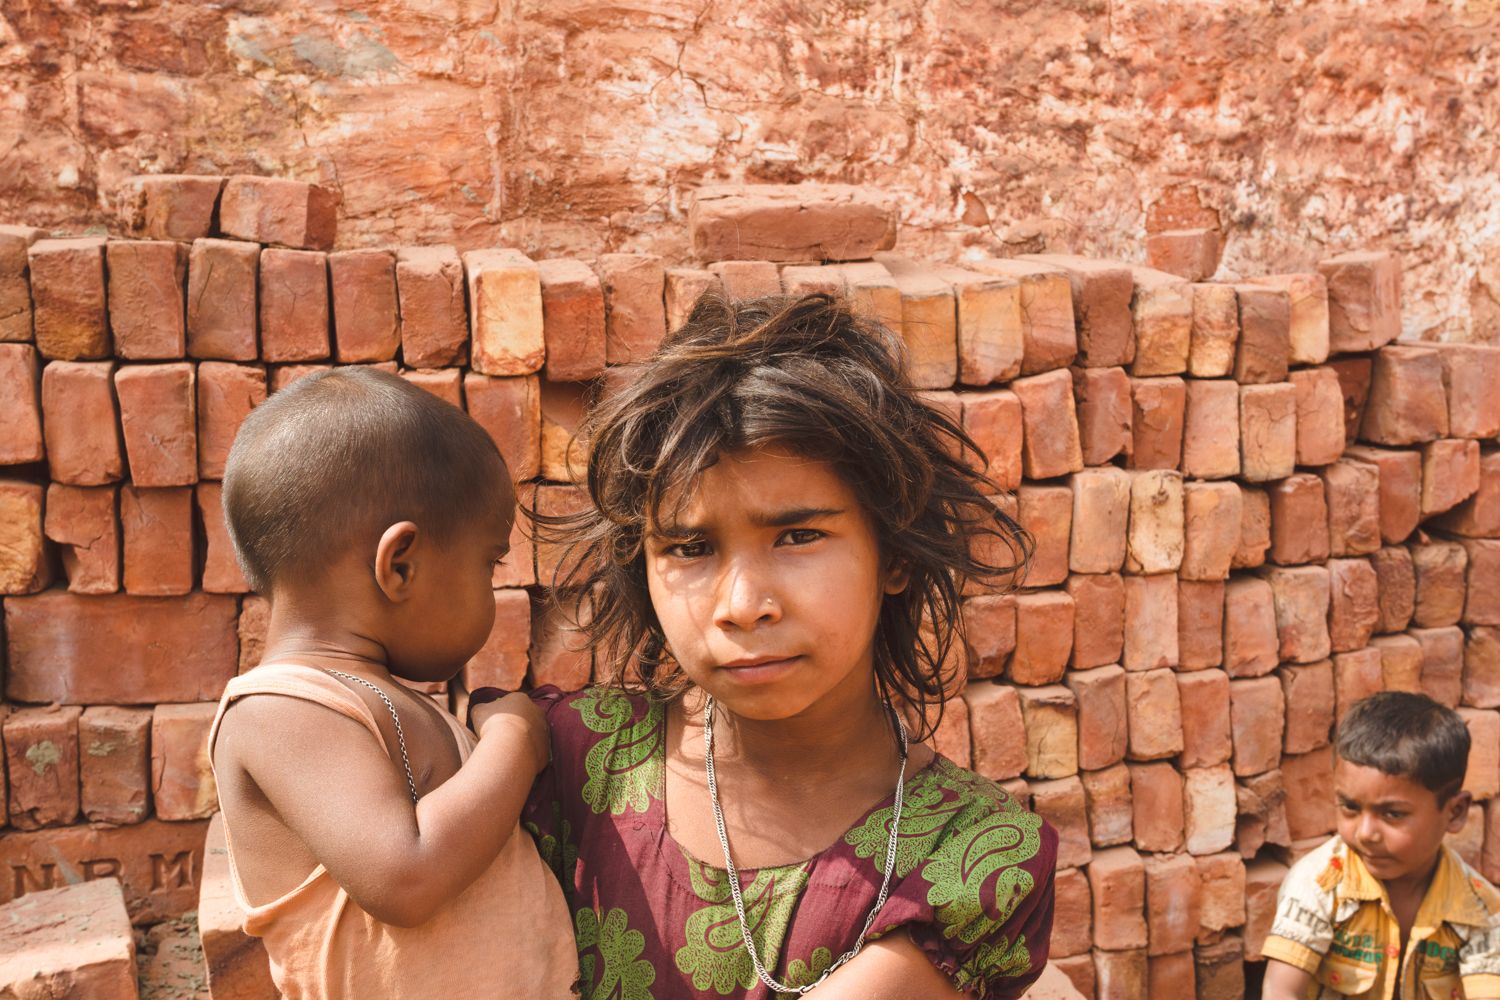 Chittagong, Bangladesh brick worker children caring for the younger sibling.